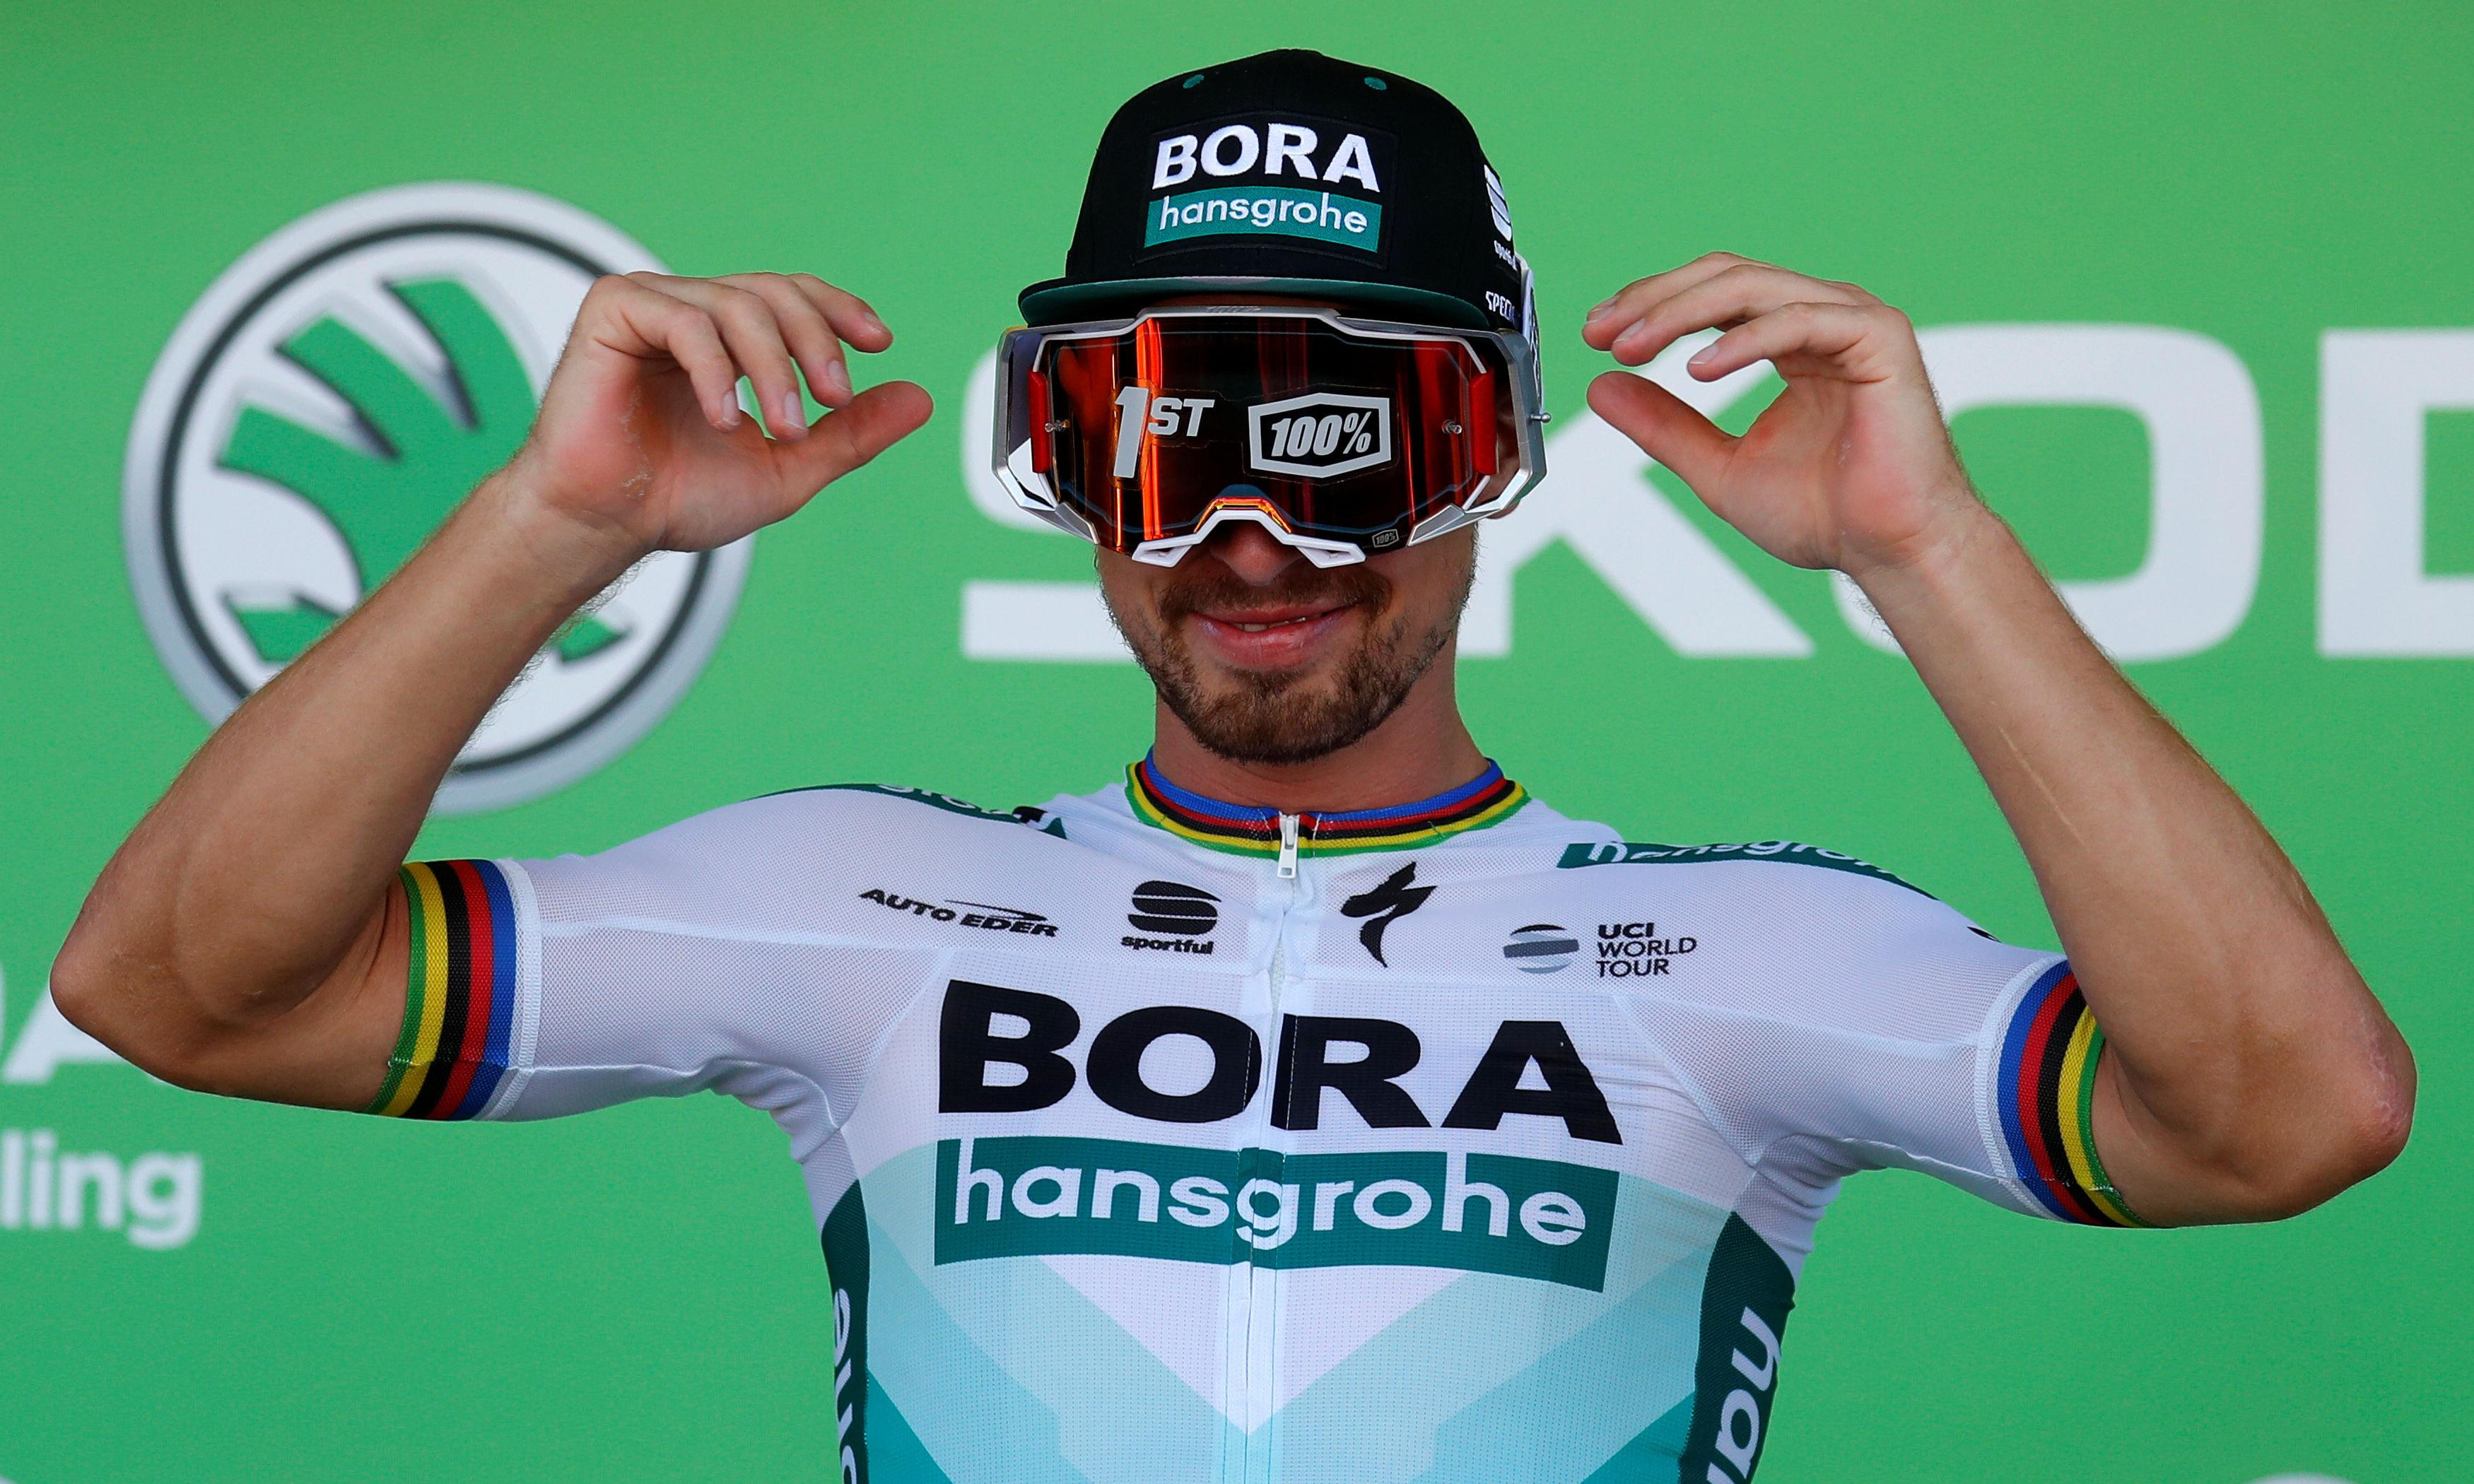 Tour de France: Sagan takes 'exquisite' stage win as Alaphilippe stays in yellow